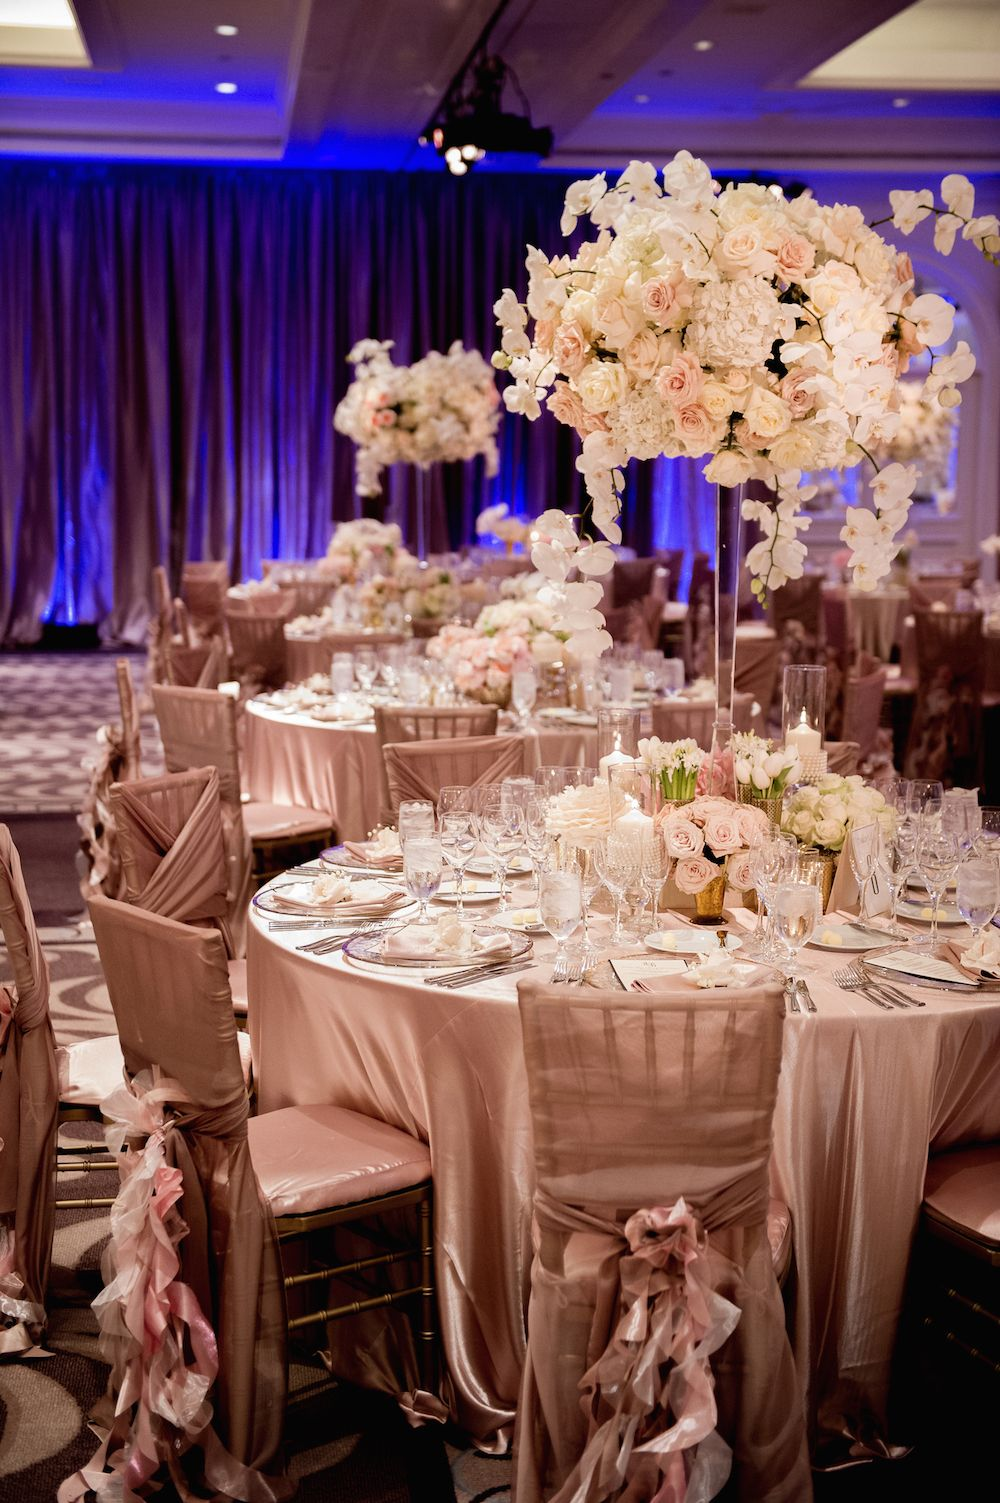 Rose gold wedding inspiration onewed rose gold ruffly wedding chair - Oceanfront Ceremony Ballroom Reception In Southern California Tall Centerpiececenterpiecesrose Gold Centerpiecewedding